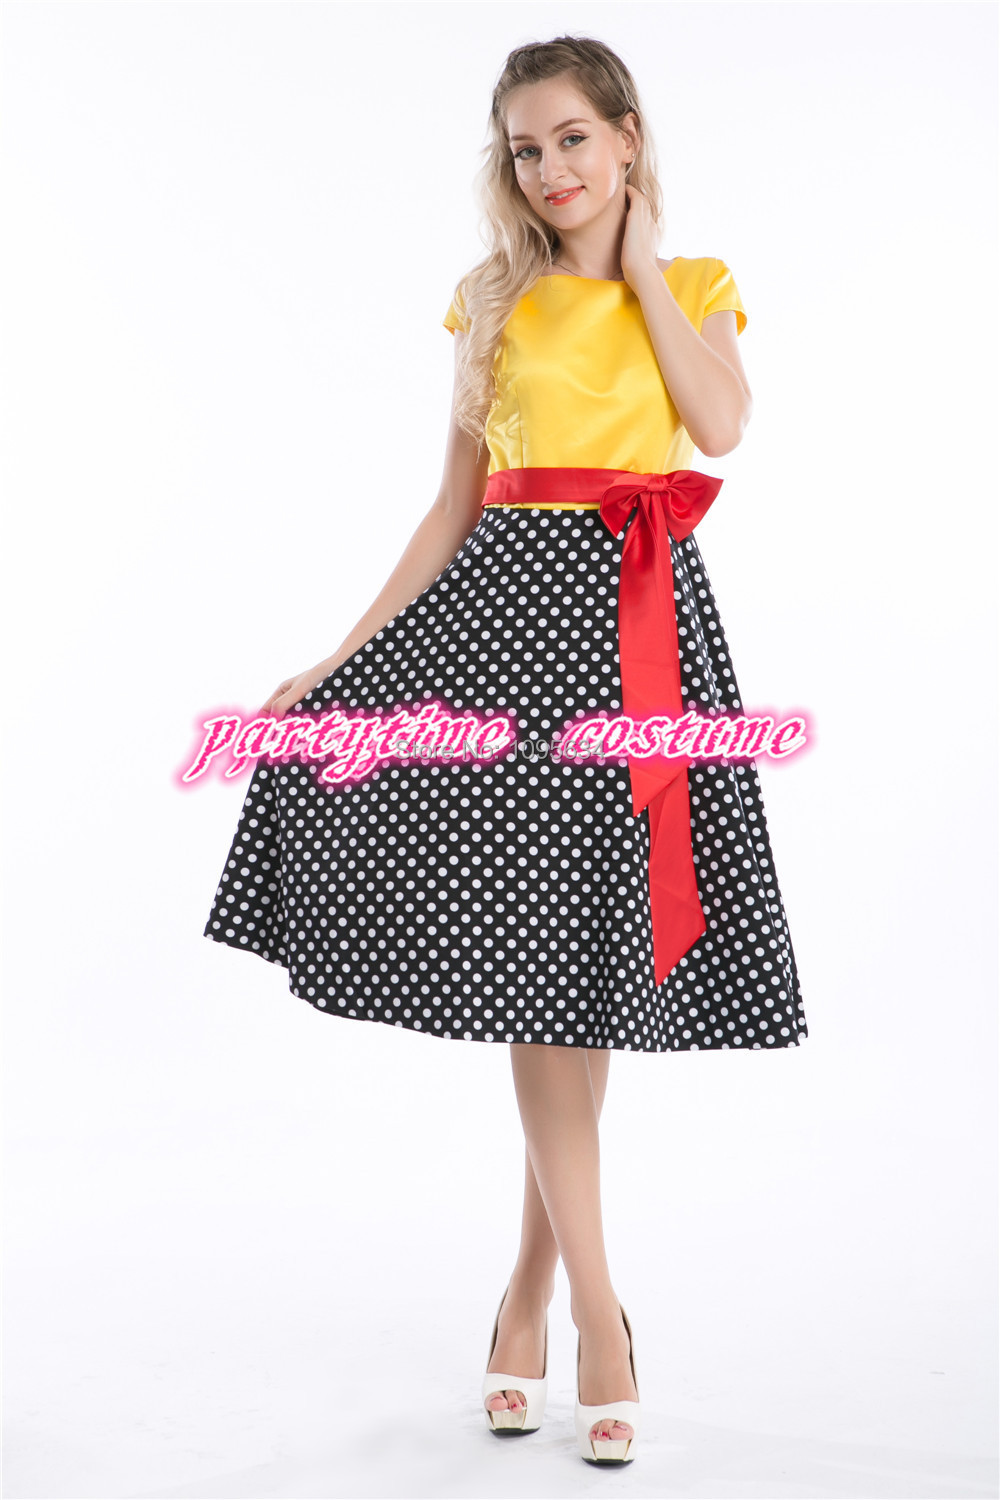 Free Shipping New Lindy Bop Chic Vintage 1950 39 S 1960 39 S Parisian Style Dress Fifties Pinup S 6xl